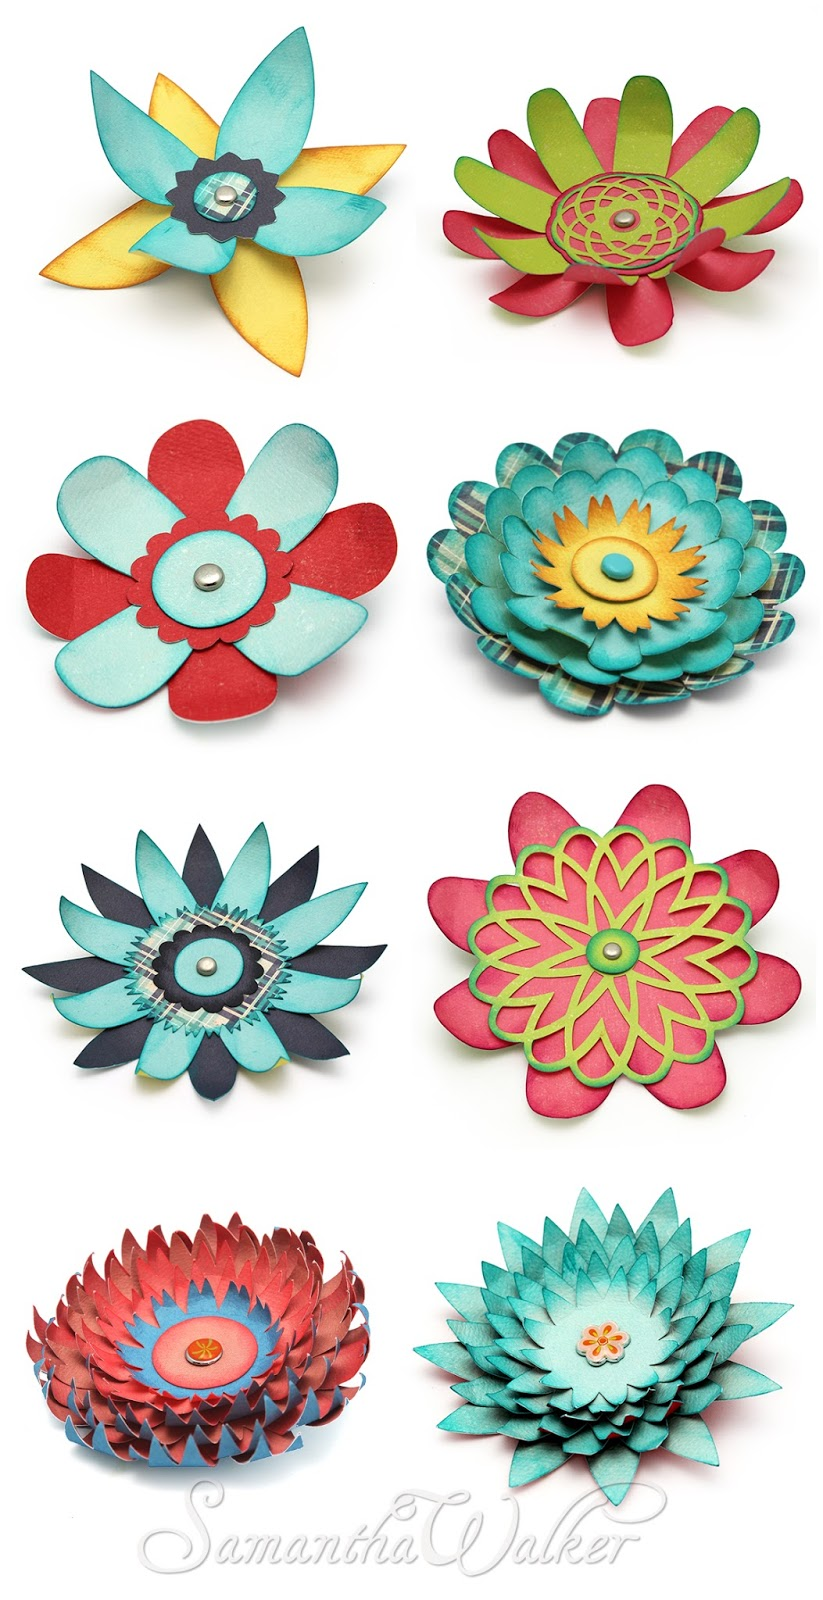 samantha walker's imaginary world: how to make 3d flowers a